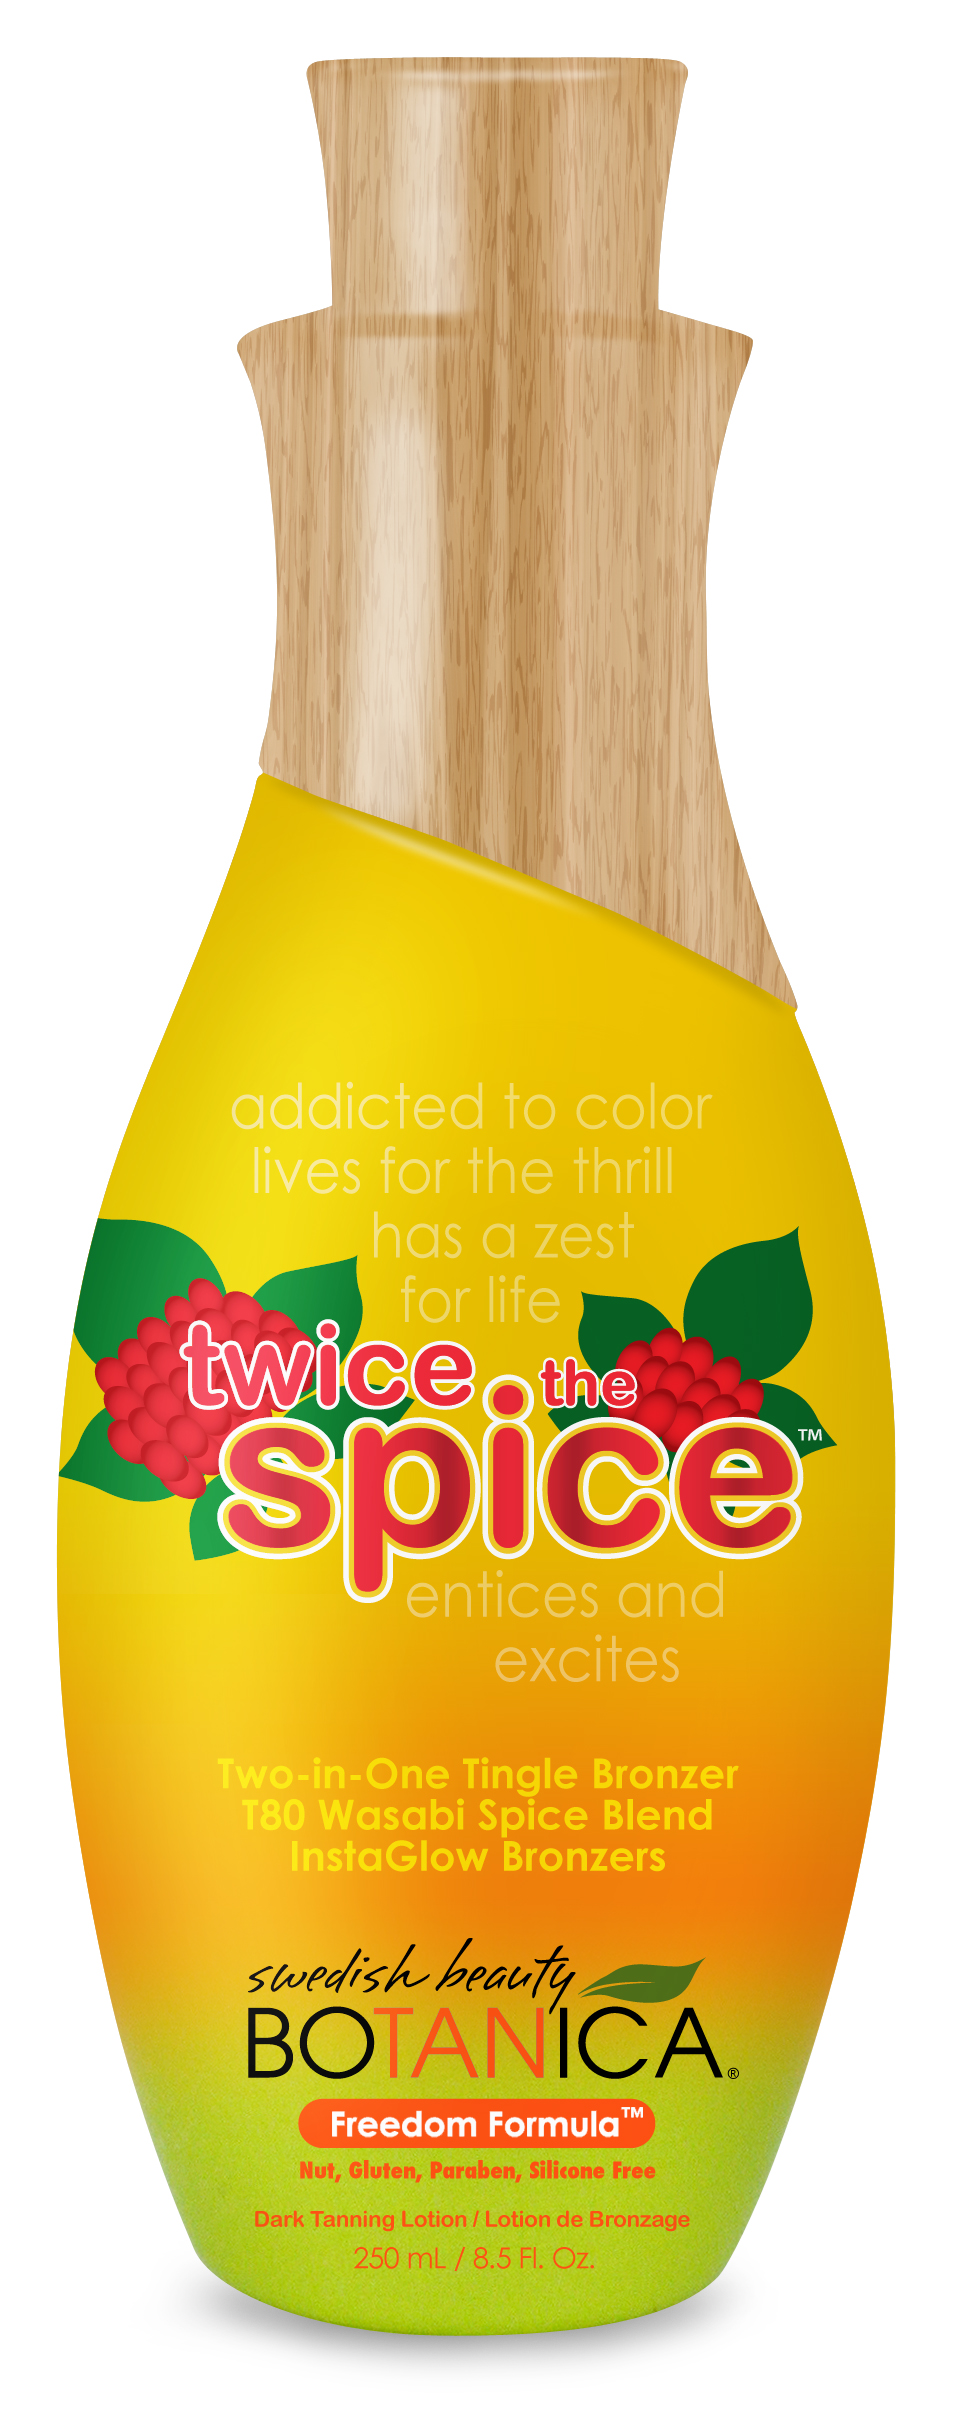 Twice the Spice™ Two-in-One Tingle Bronzer with T80 Wasabi Spice Blend